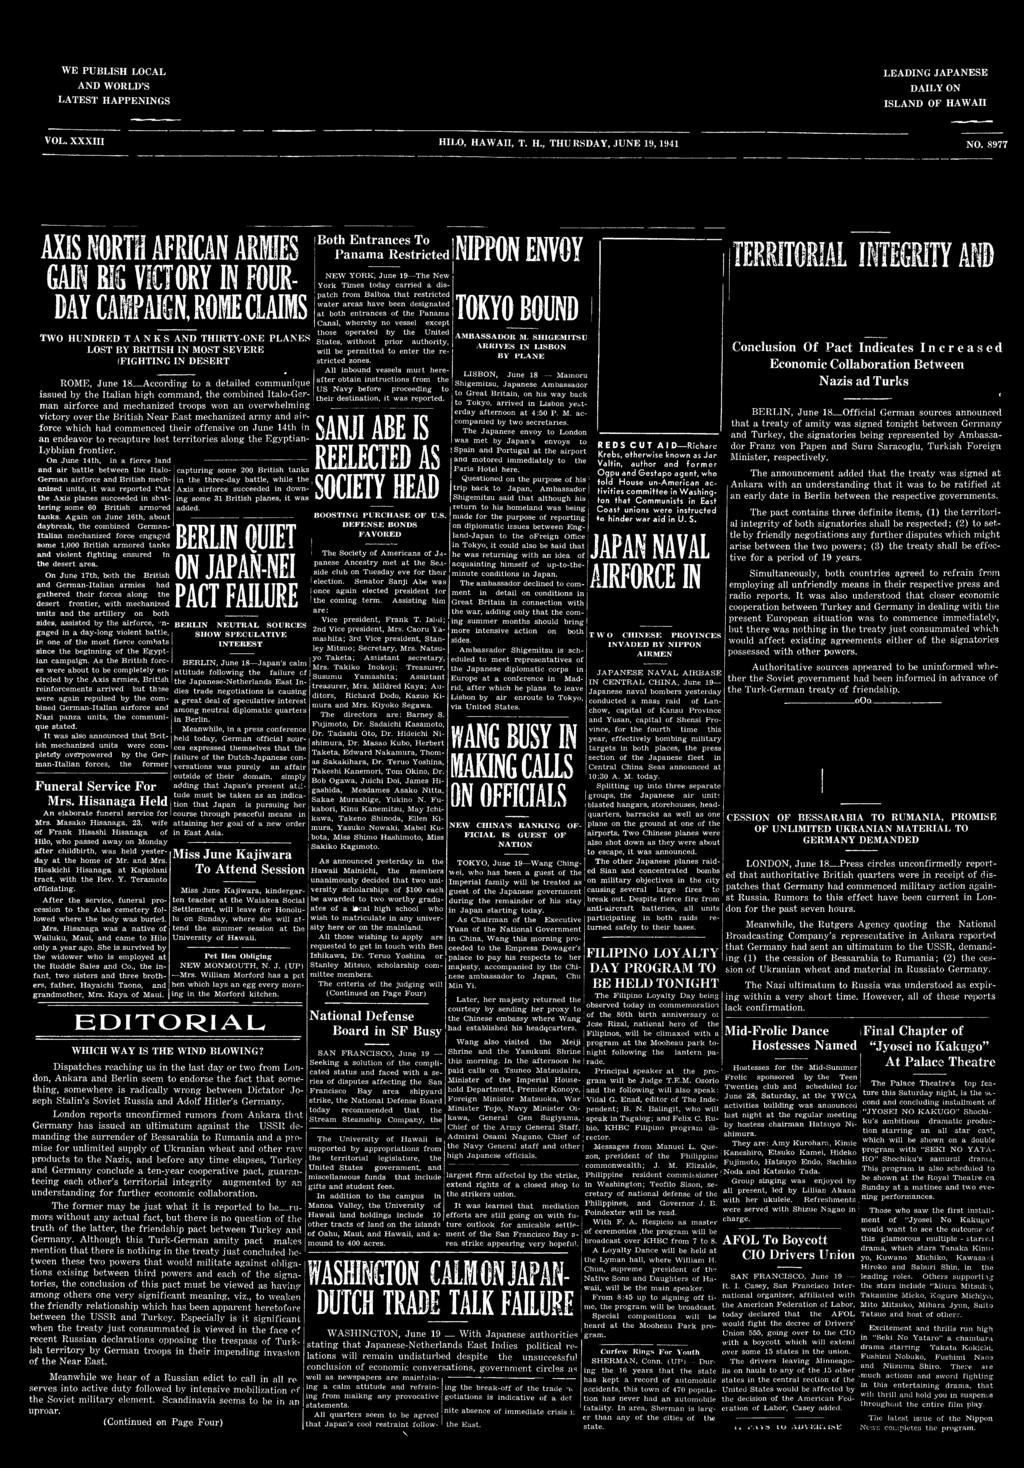 WE PUBLISH LOCAL AND WORLD S LATEST HAPPENINGS LEADING JAPANESE DAILY ON ISLAND OF HAWAII VOL. XXXIII HILO, HAWAII, T. H., THURSDAY, JUNE 19,1941 NO.